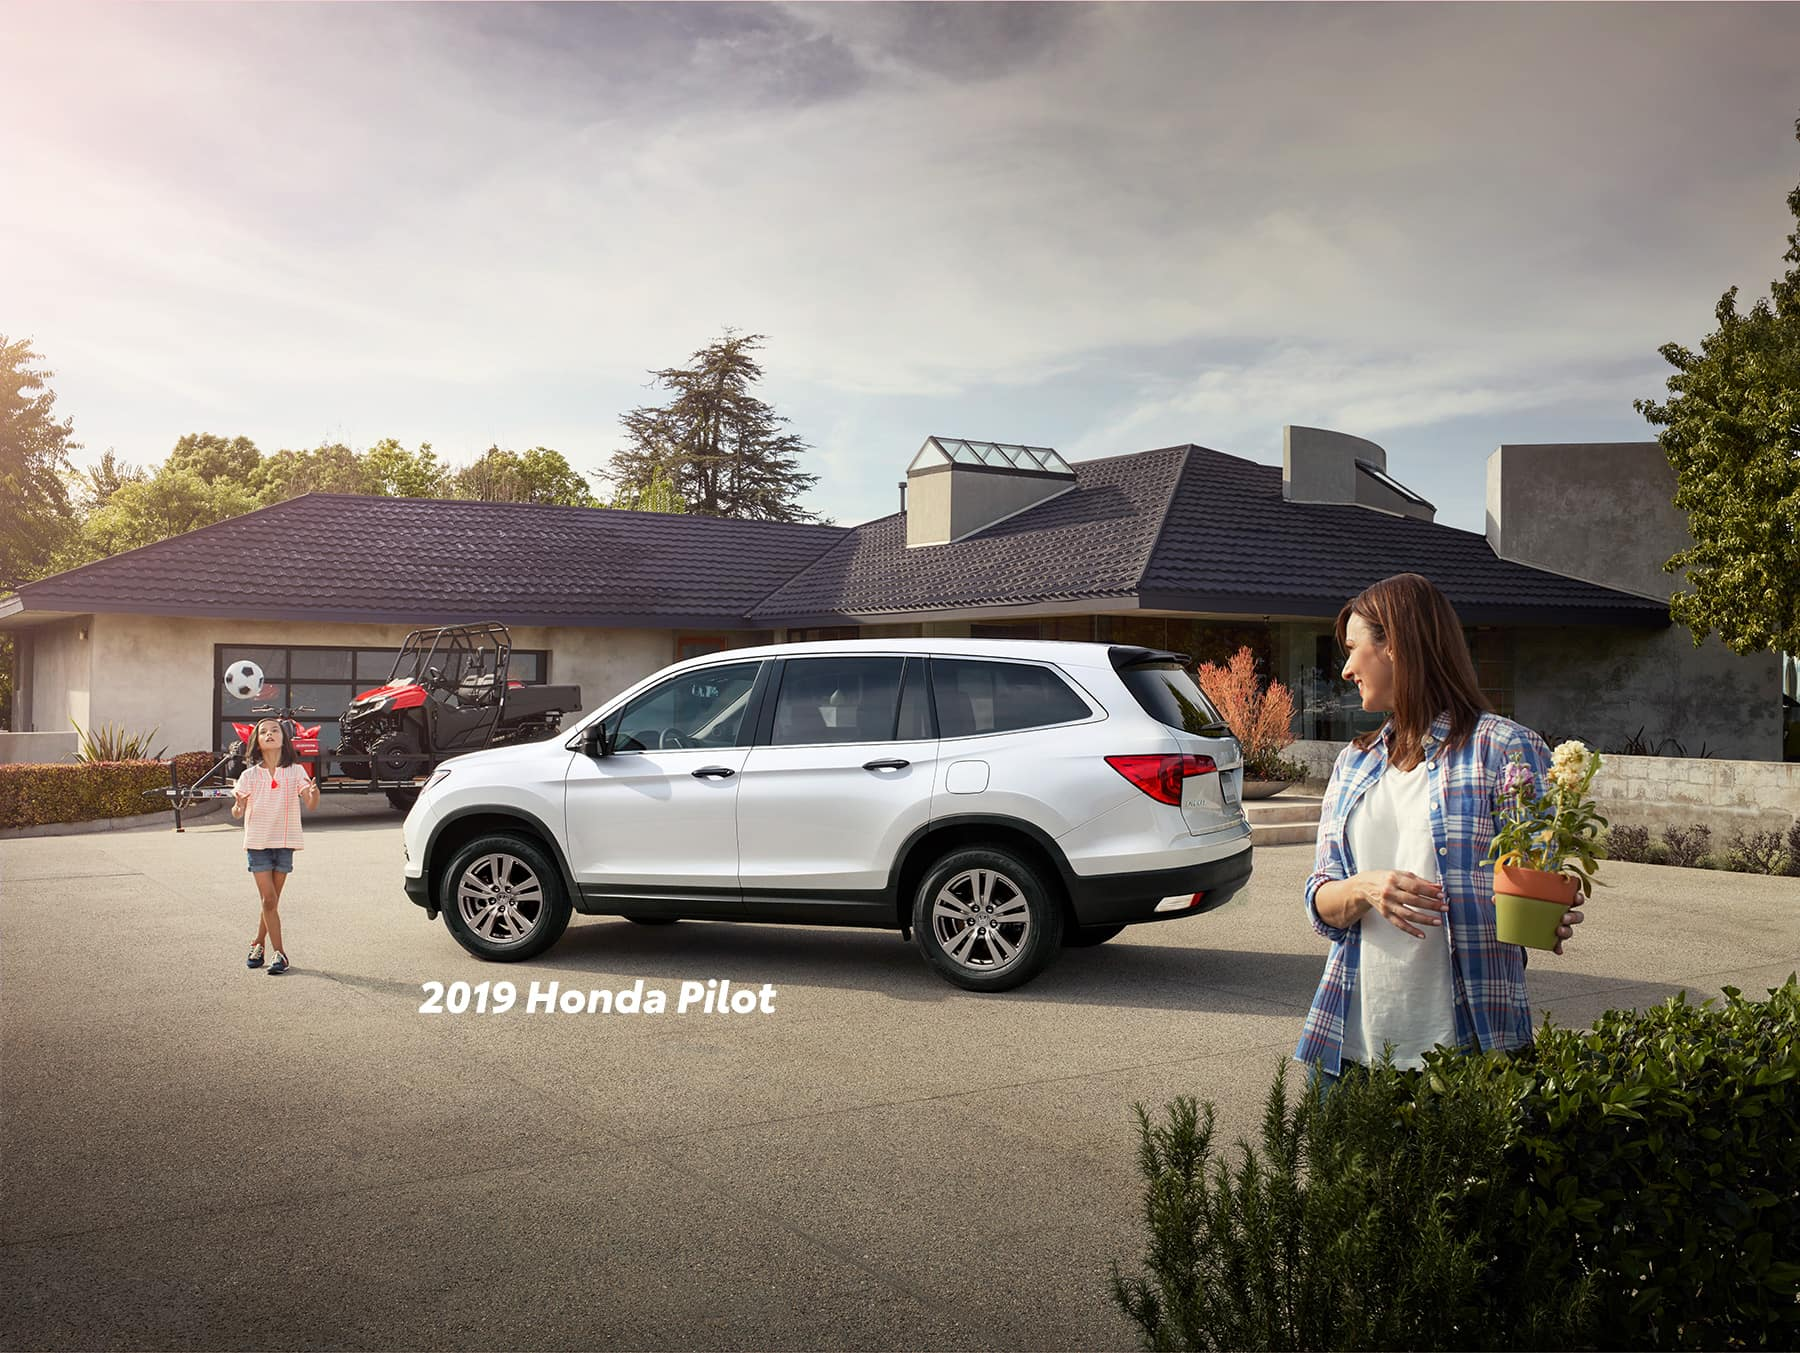 Comparison of the 2019 Pilot versus 2019 CR-V at Boch Honda of Norwood | White 2019 Honda Pilot parked infron of a house